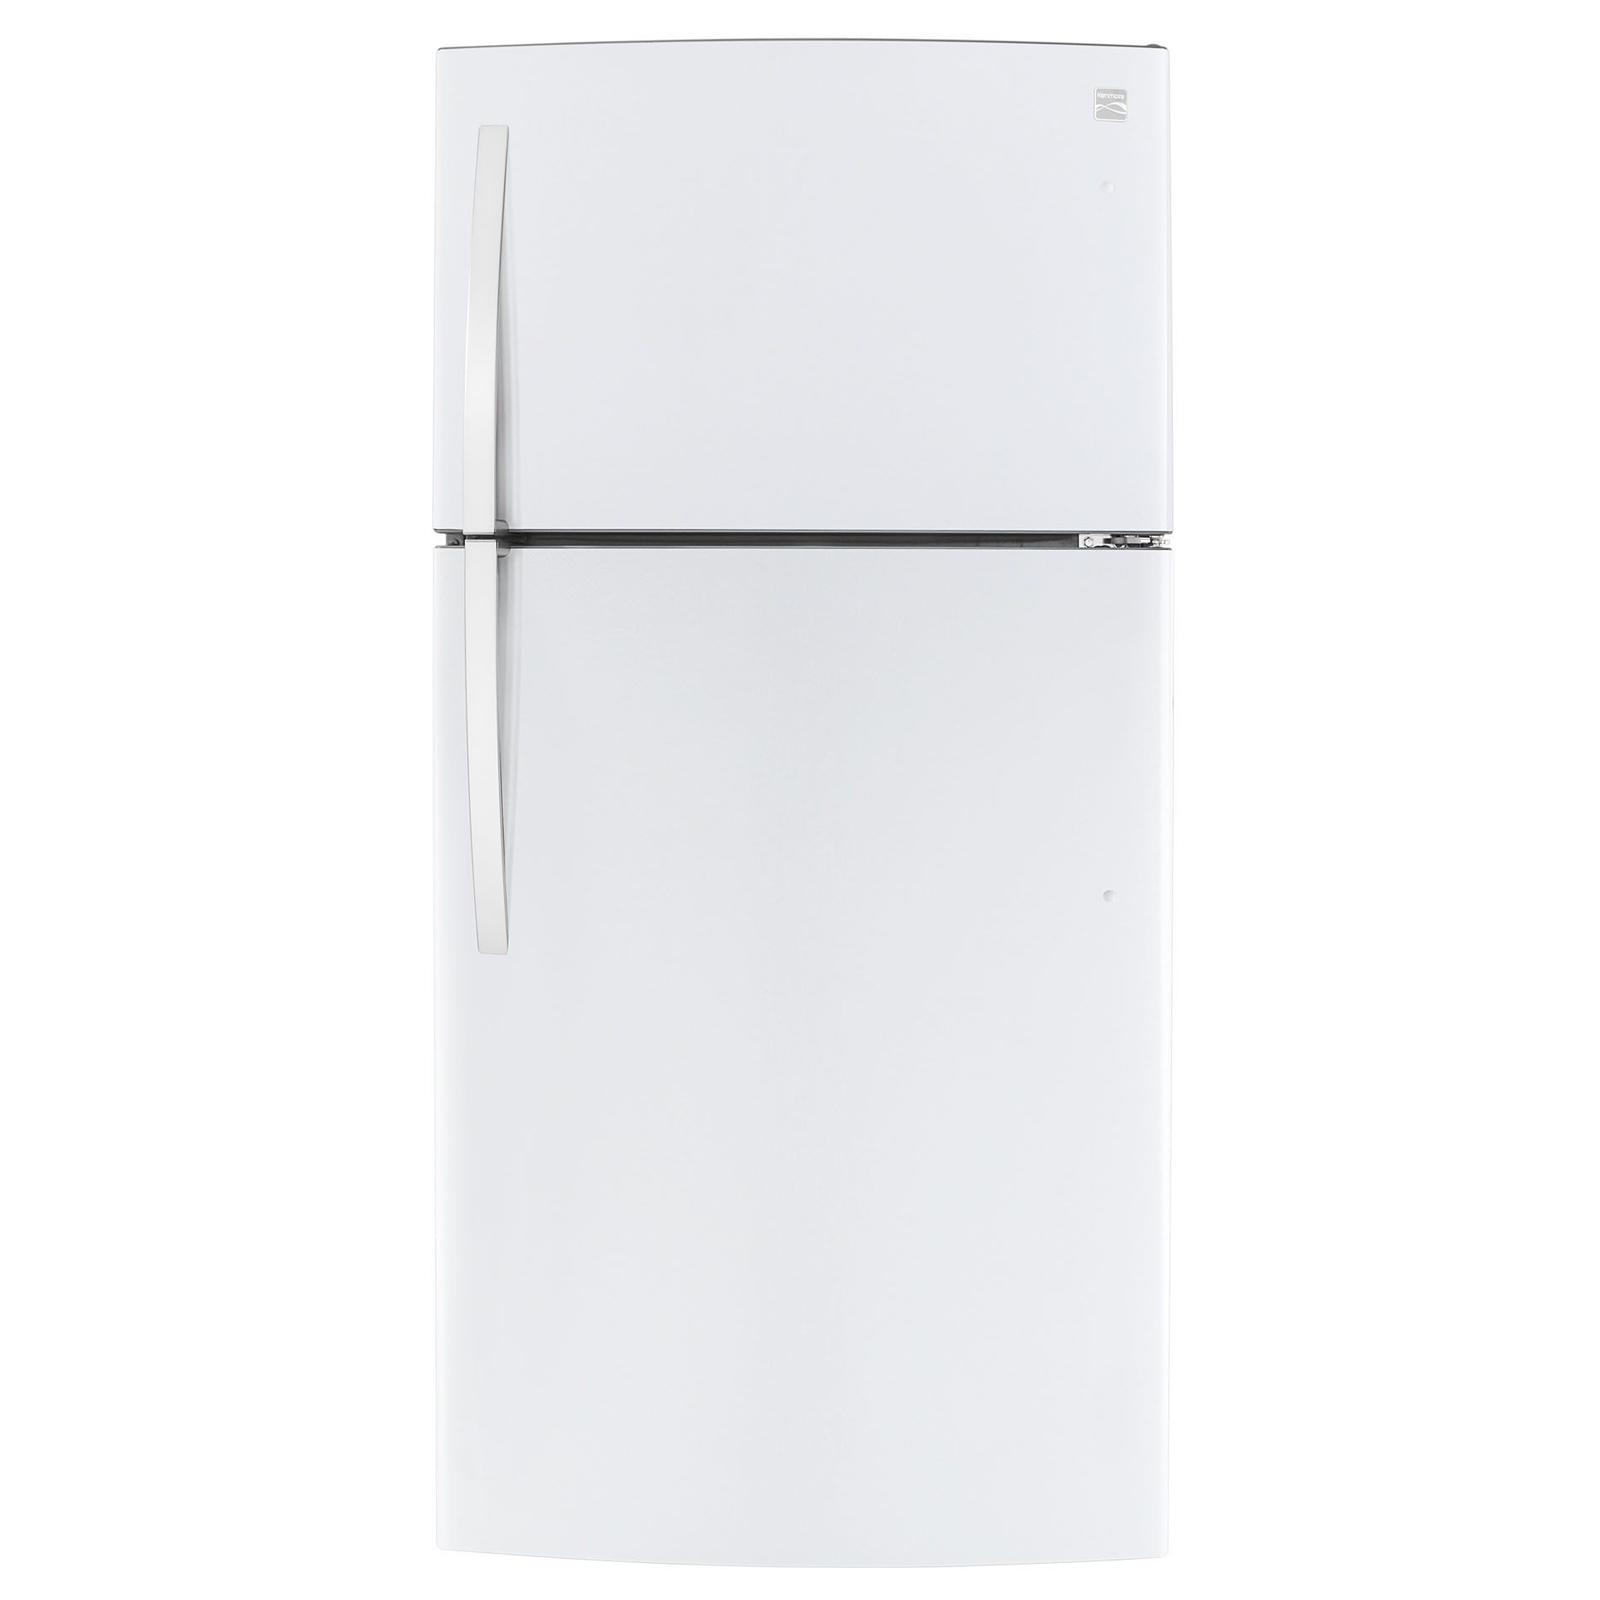 Kmart Freezer Led Lighting Kenmore Refrigerator Kmart